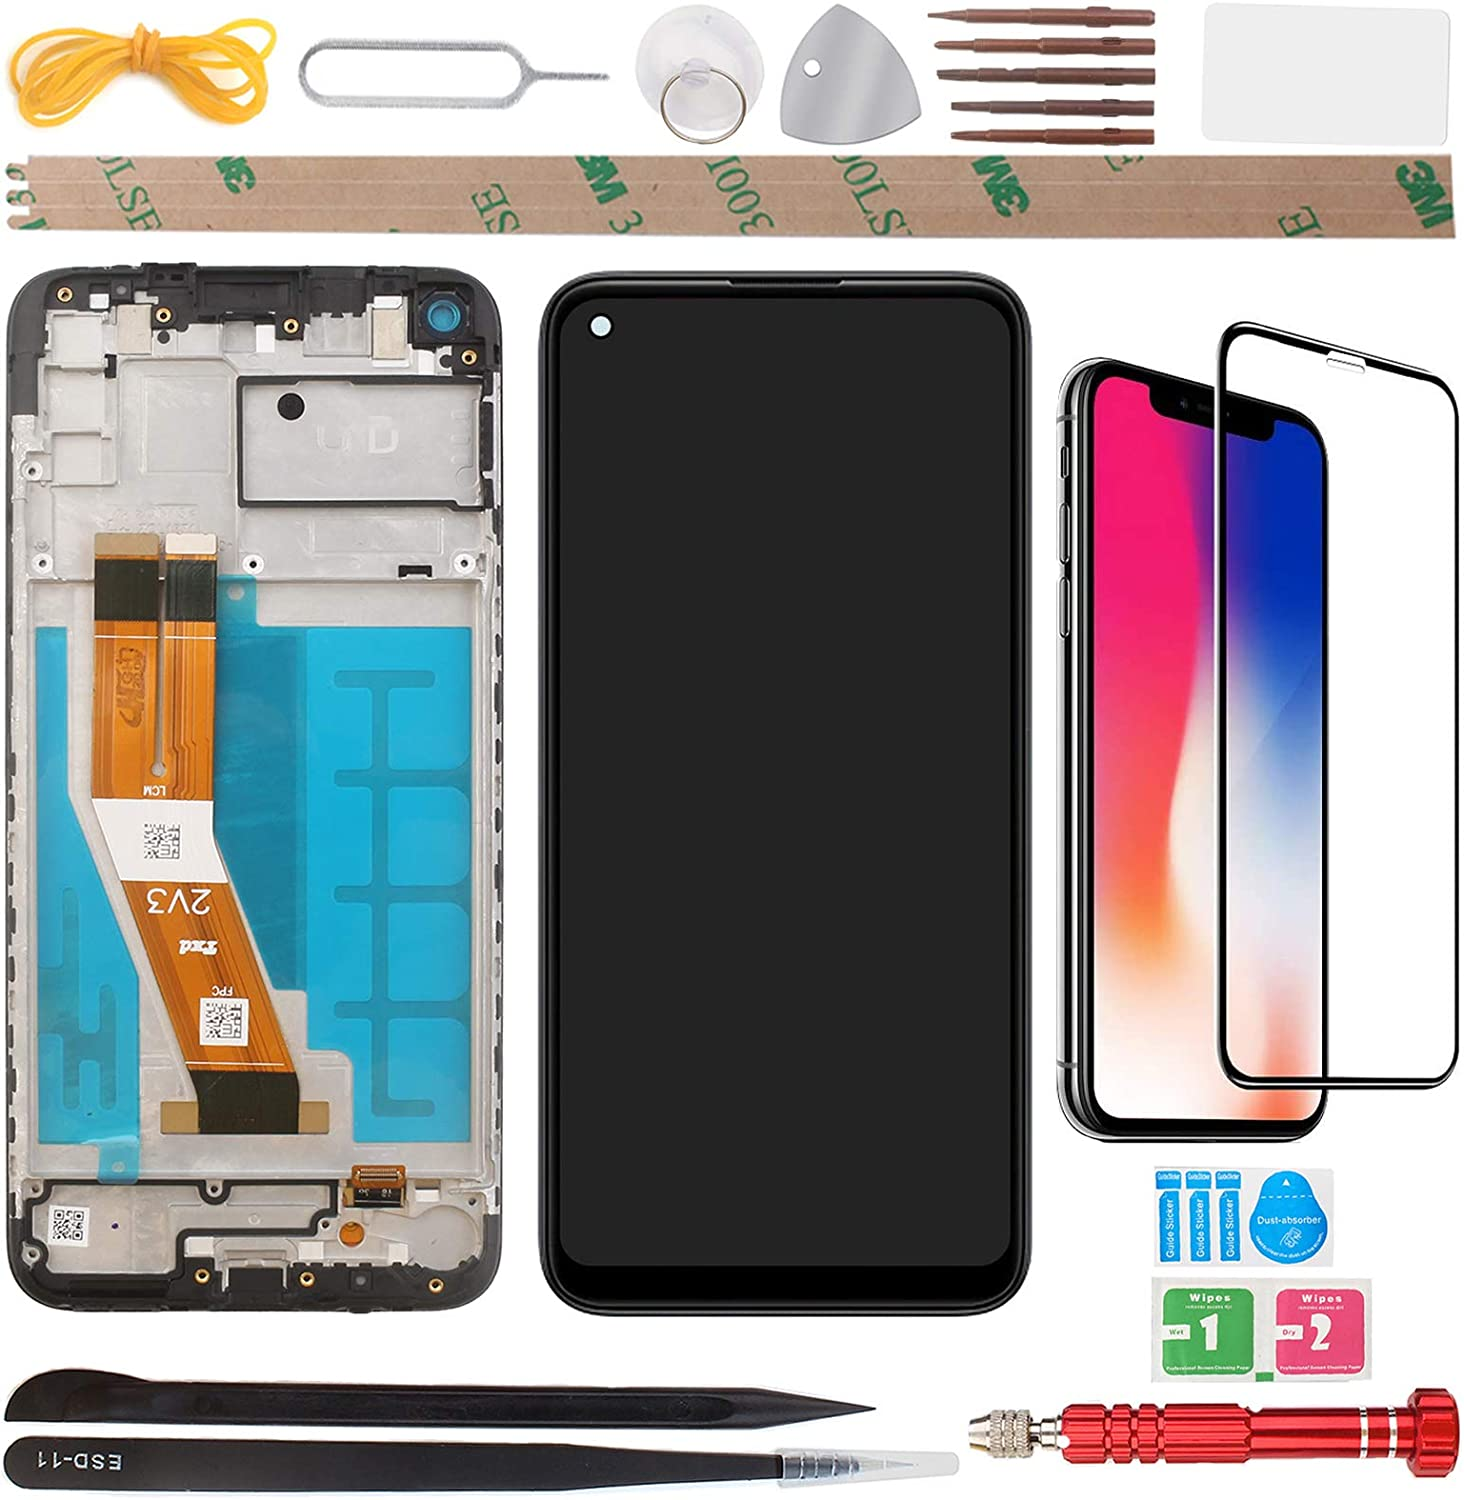 YHX-US OLED Screen Replacement LCD Display Touch Screen Digitizer Assembly with 1 Piece Screen Protector Suitable for Samsung Galaxy A11 SM-A115F 2020 6.40